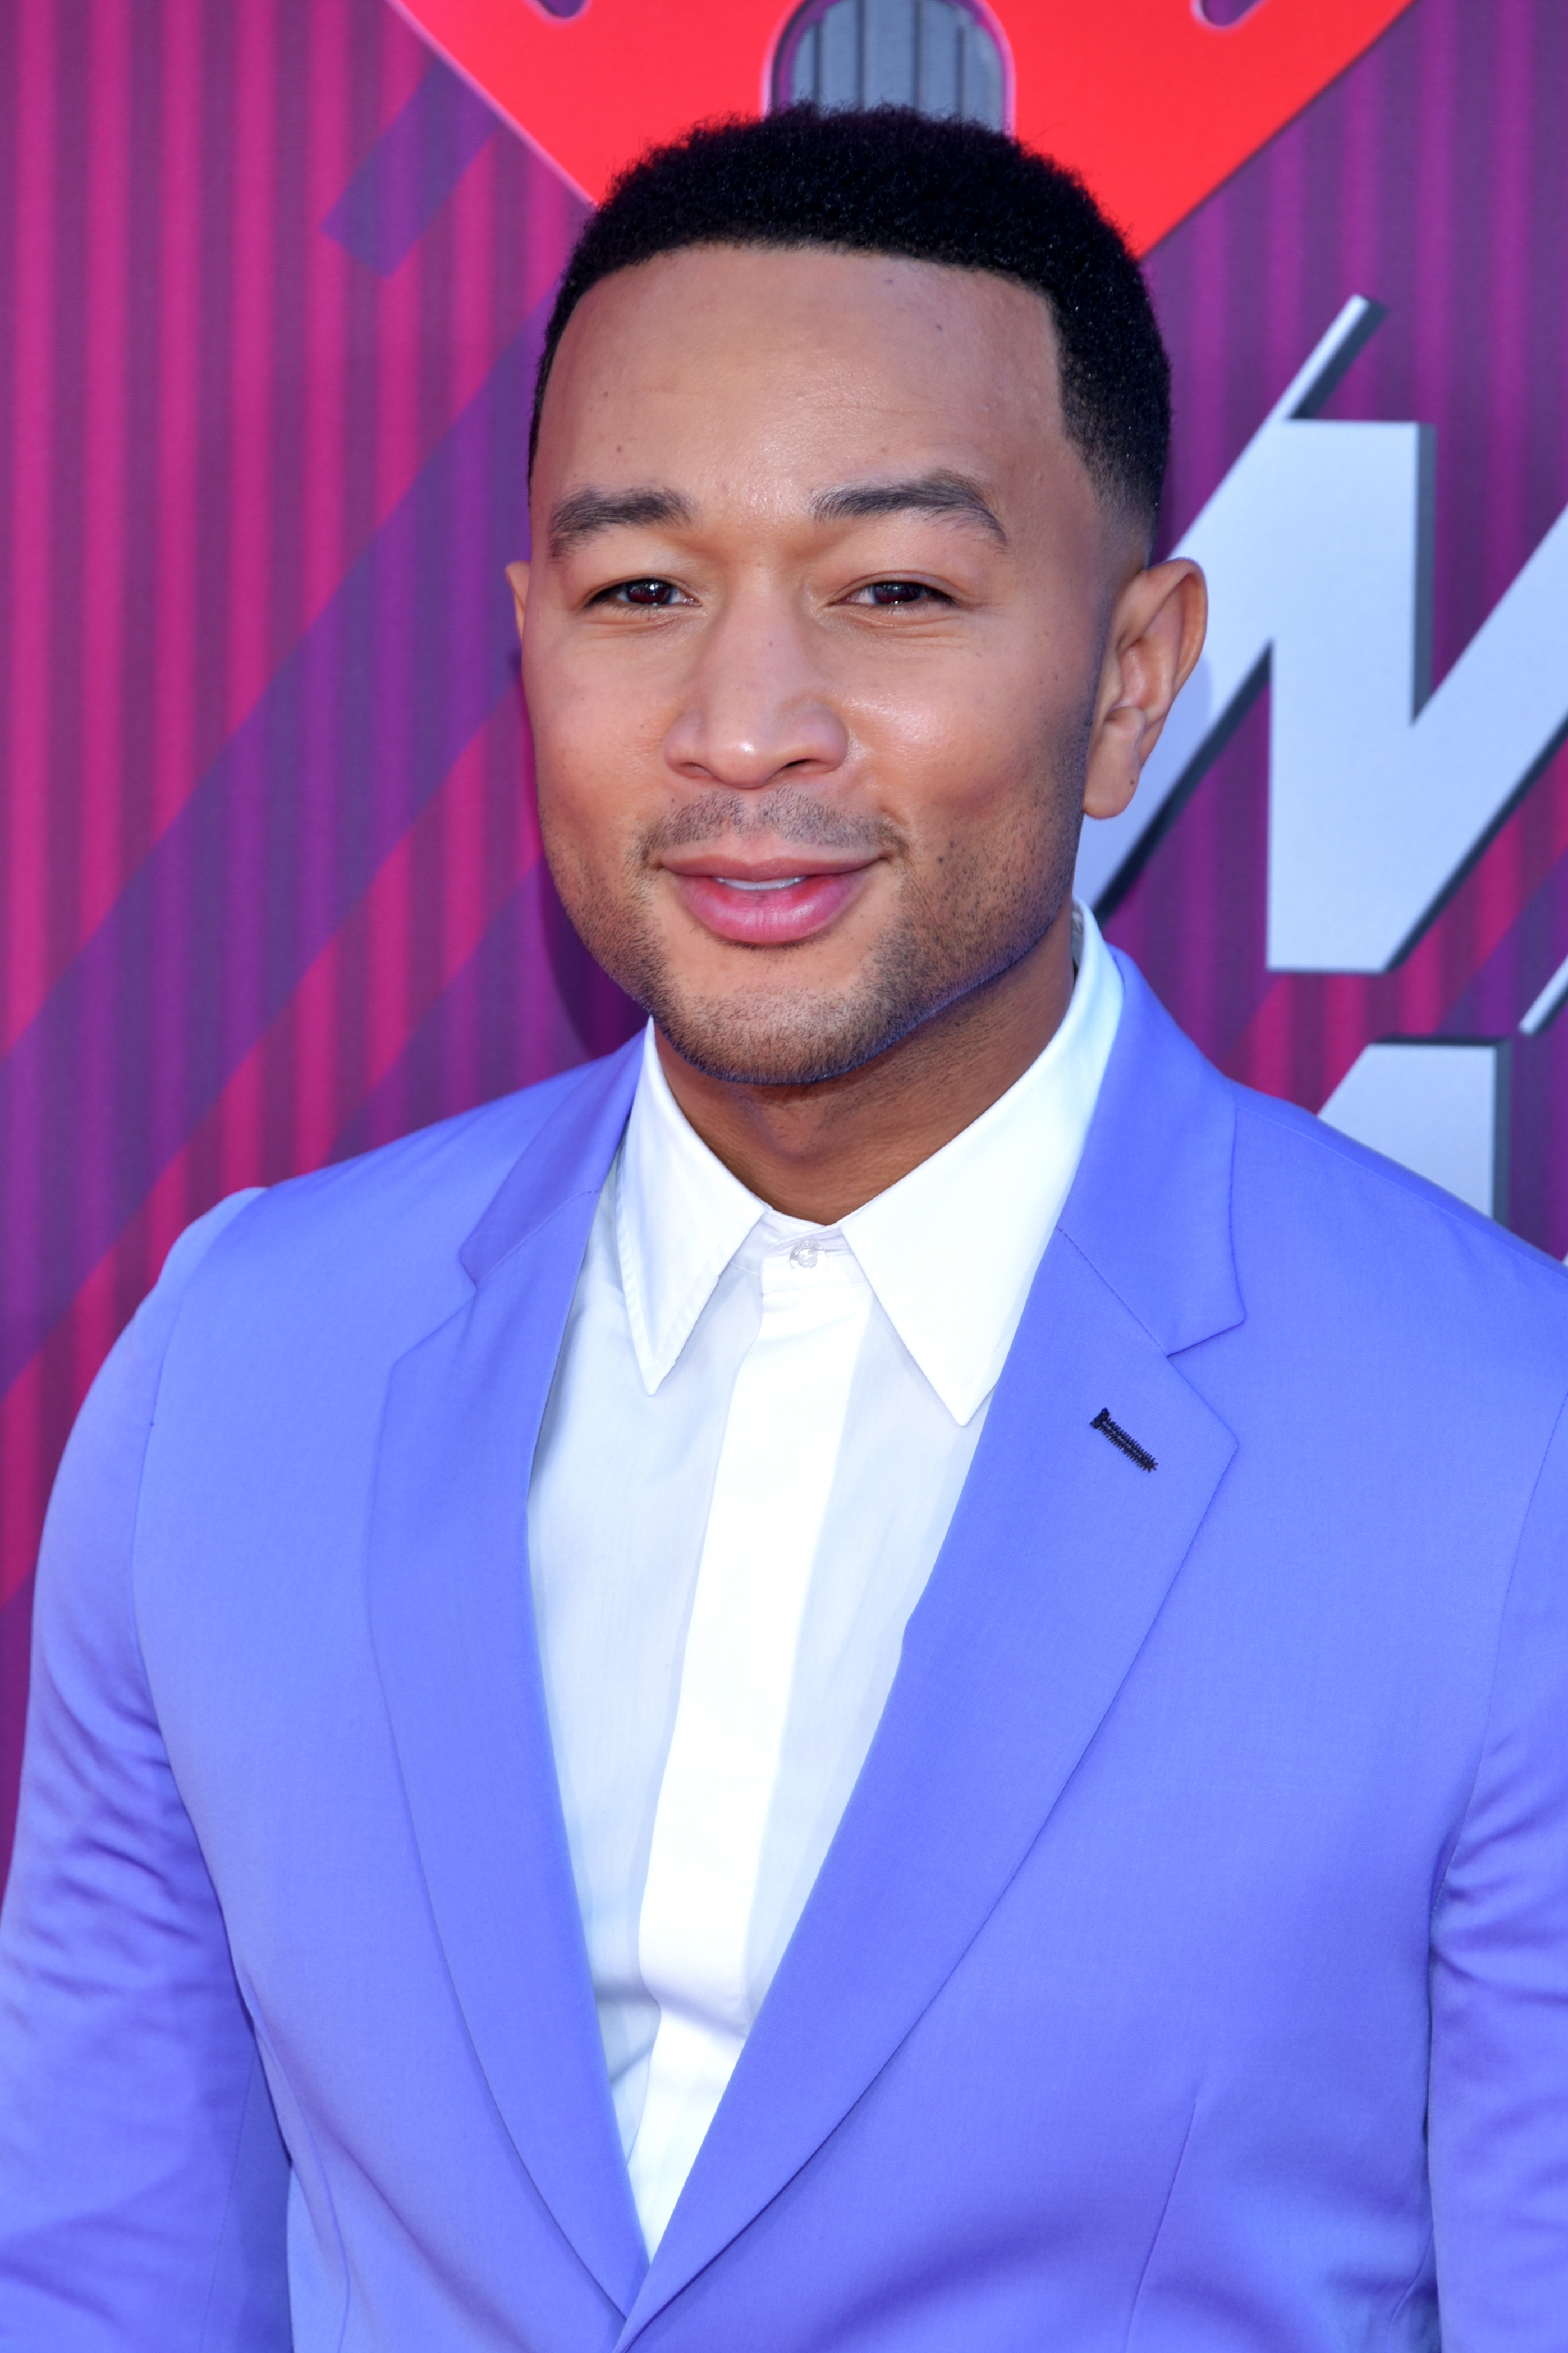 John Legend - Wikipedia